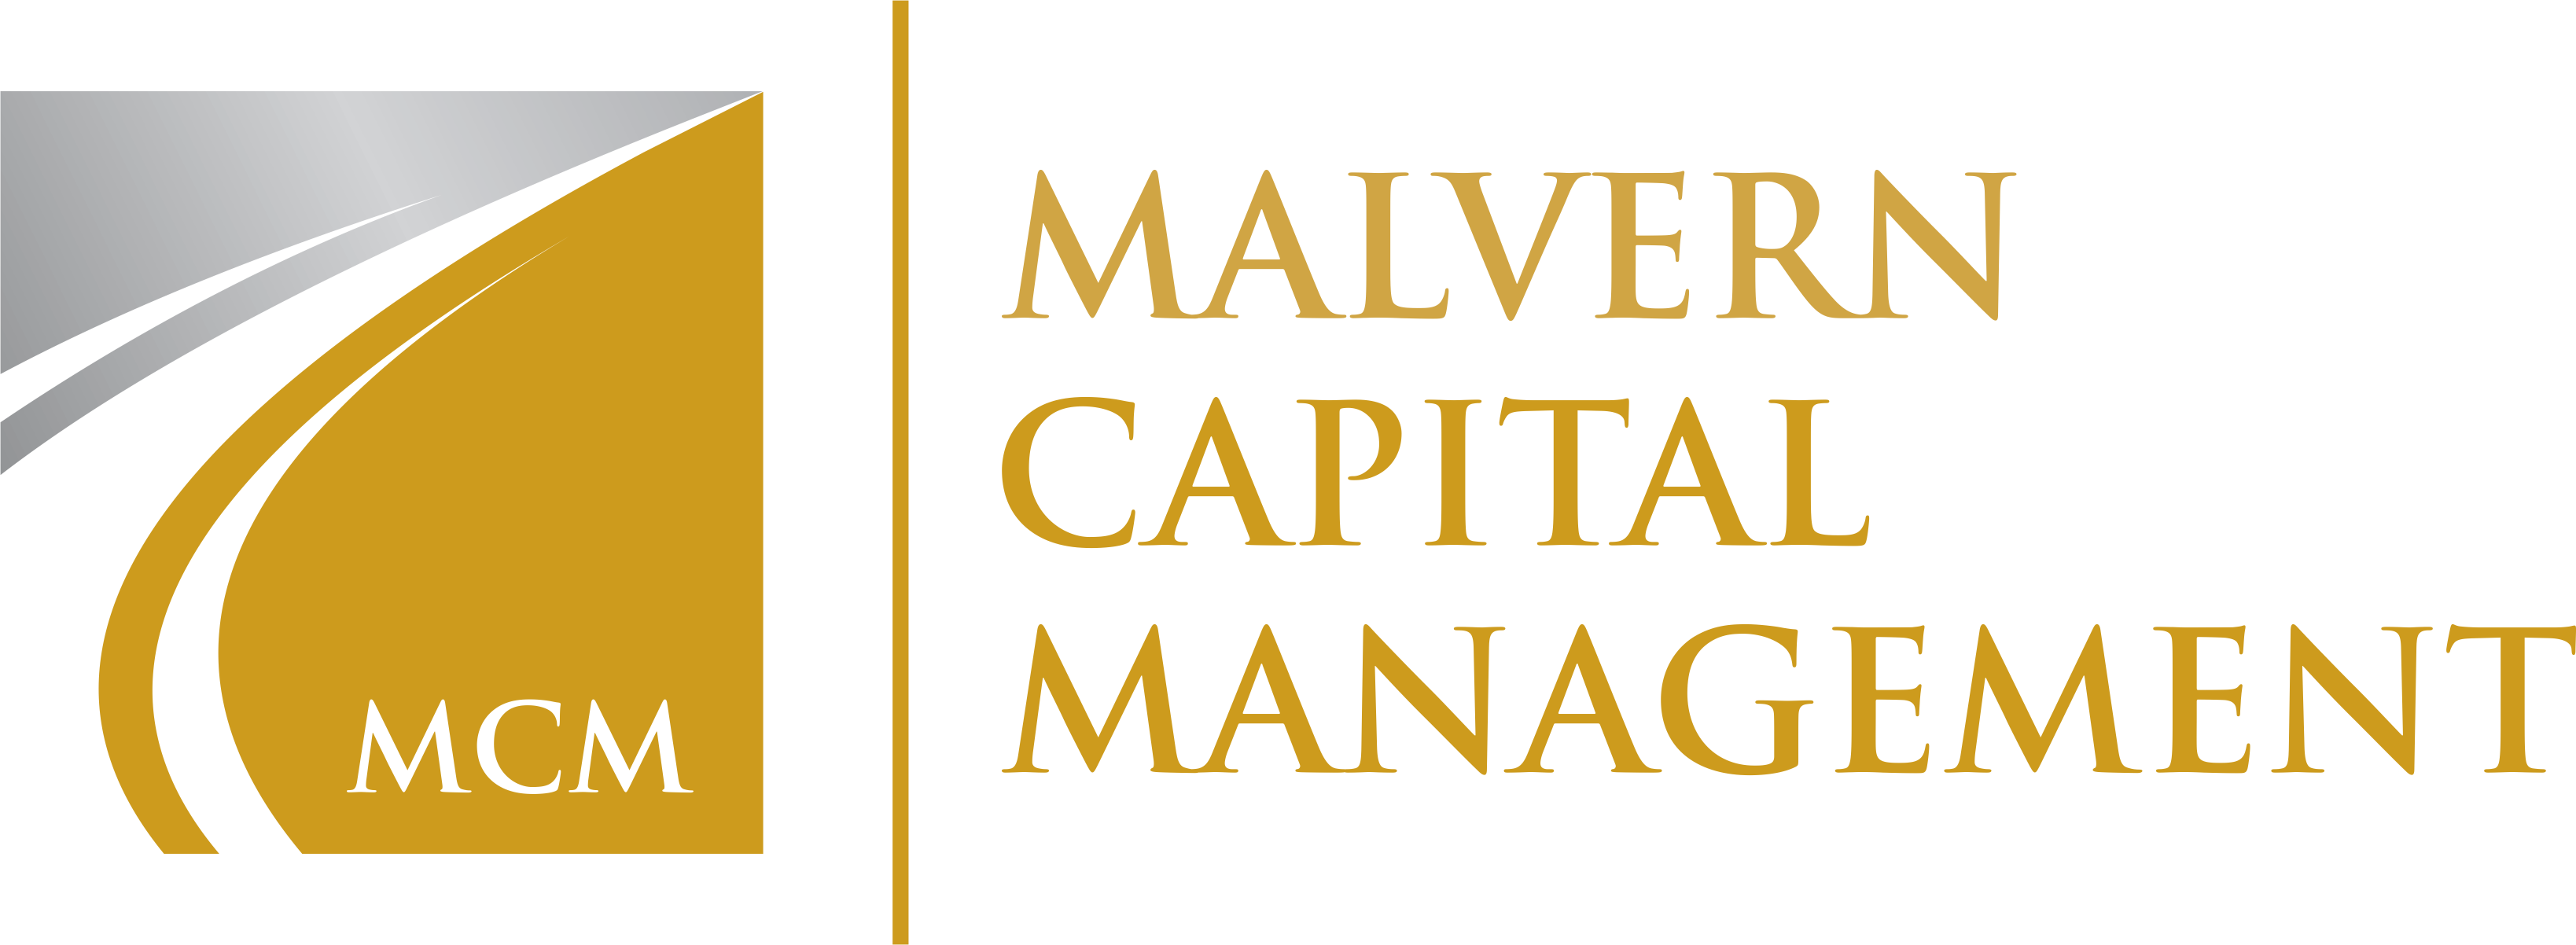 Malvern Capital Management